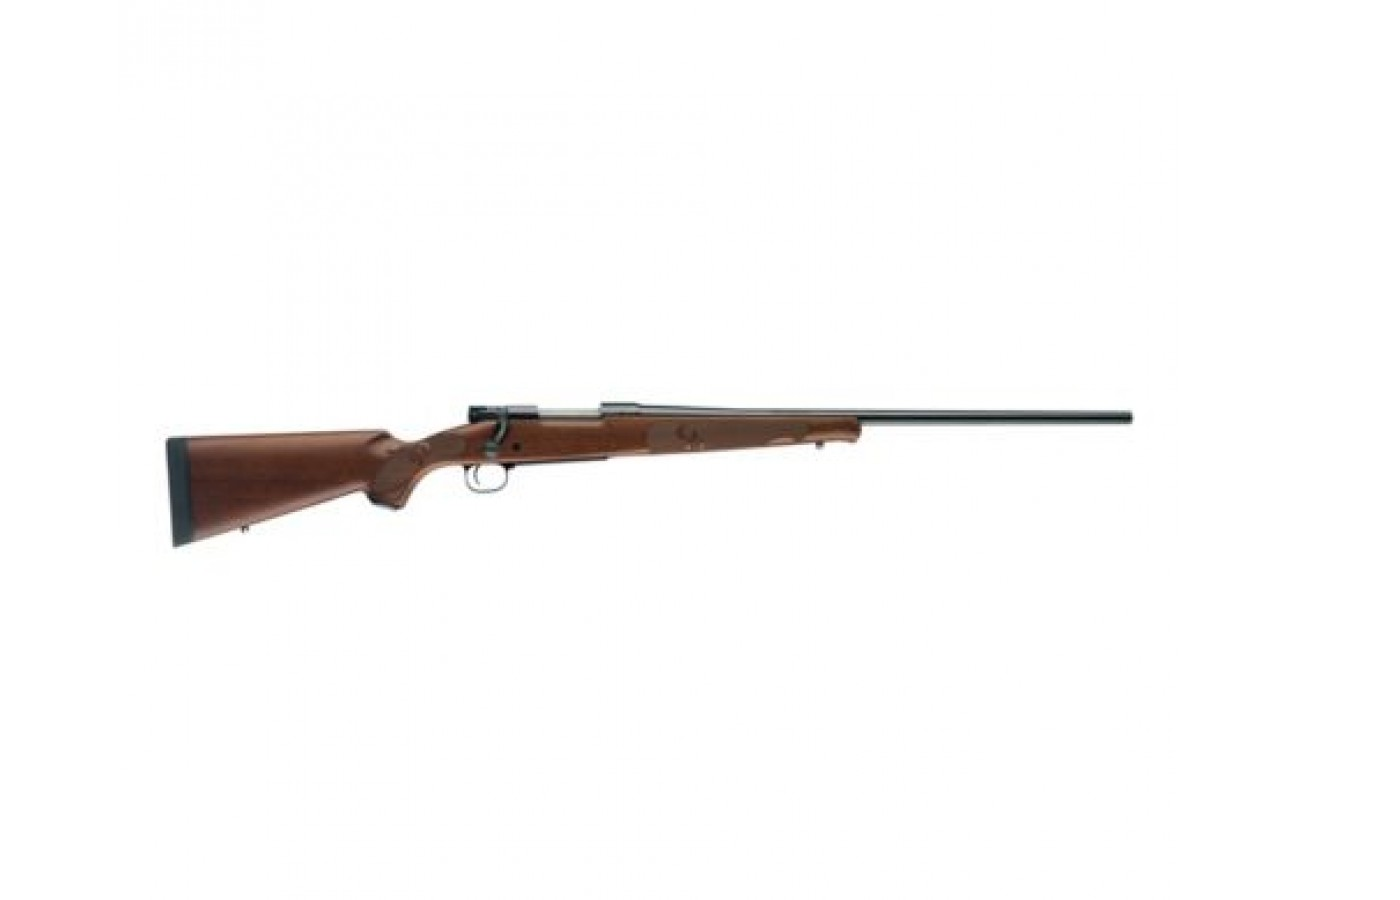 The Winchester Model 70 has grown and matured into an excellent weapon for nostalgic sportsmen not wanting to sacrifice functionality.